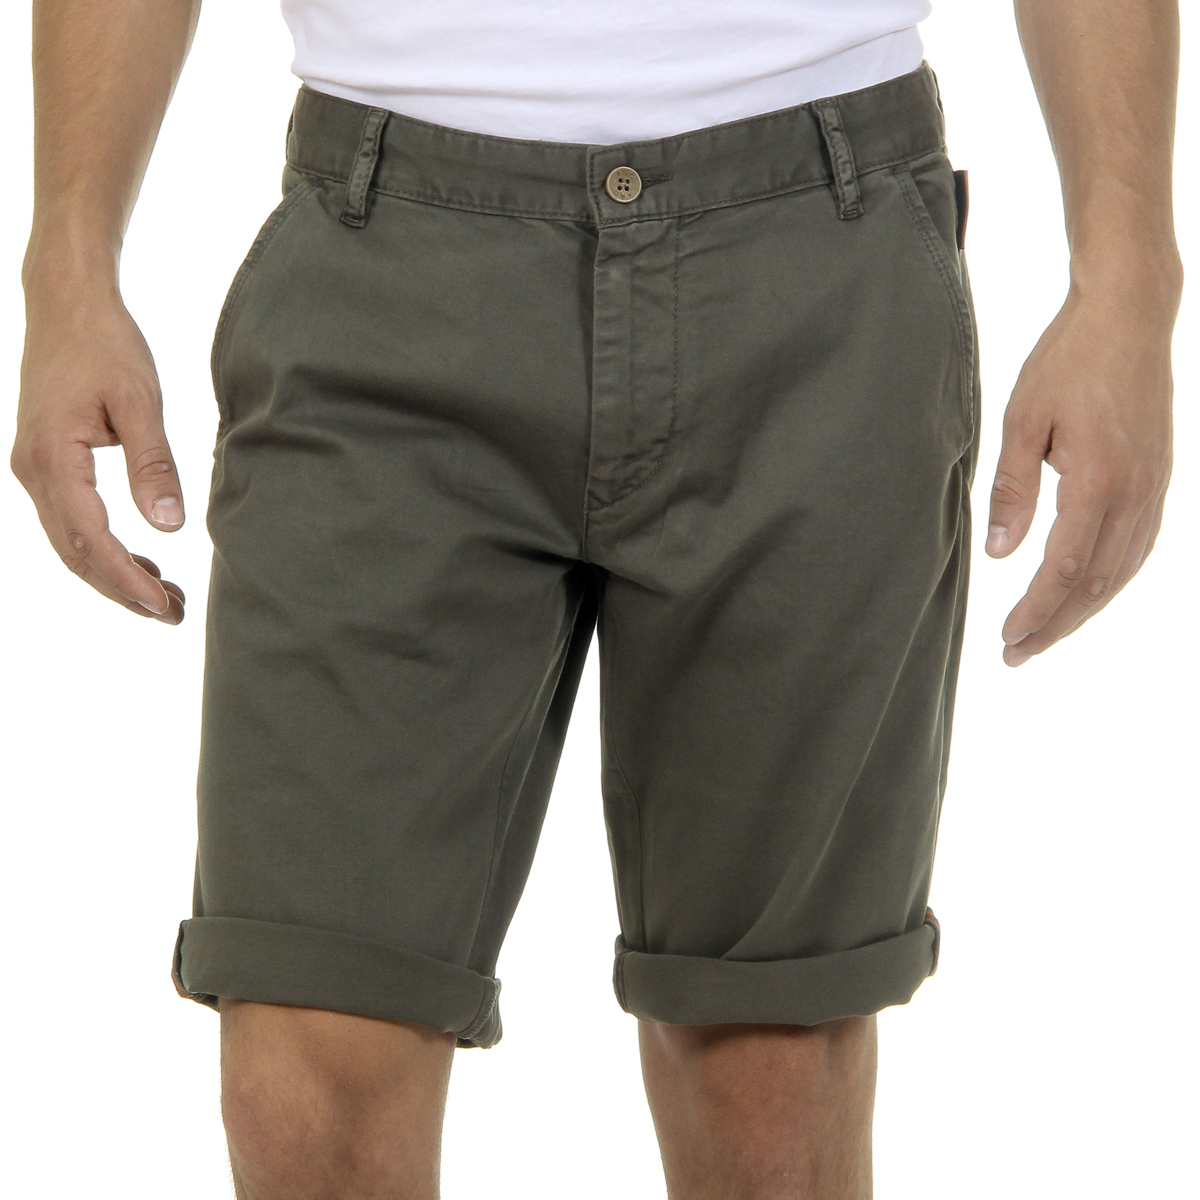 Primary image for Andrew Charles Mens Shorts Green SADECK